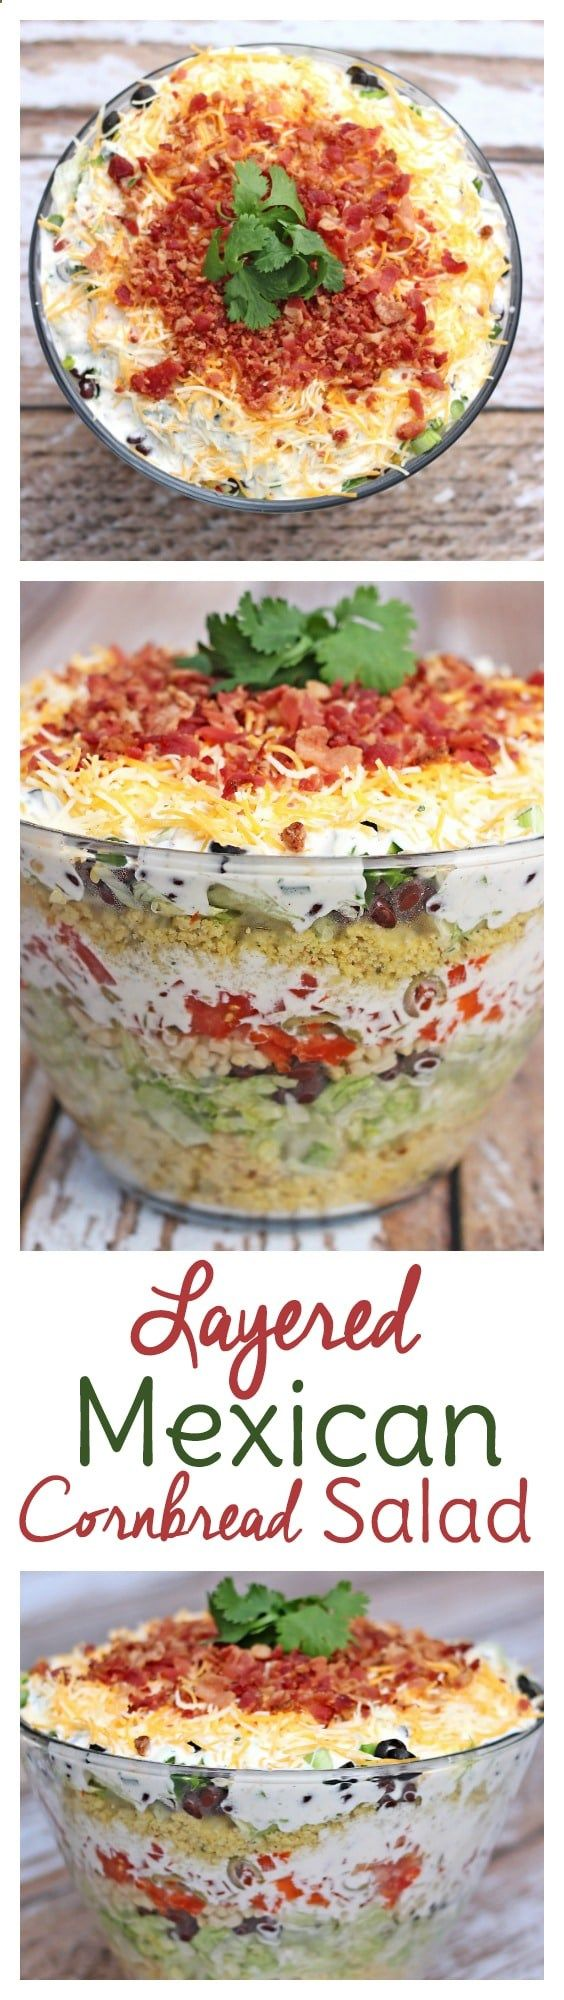 My aunts original recipe, this Layered Mexican Cornbread Salad Recipe is HUGE hit at potlucks. There are never leftovers!